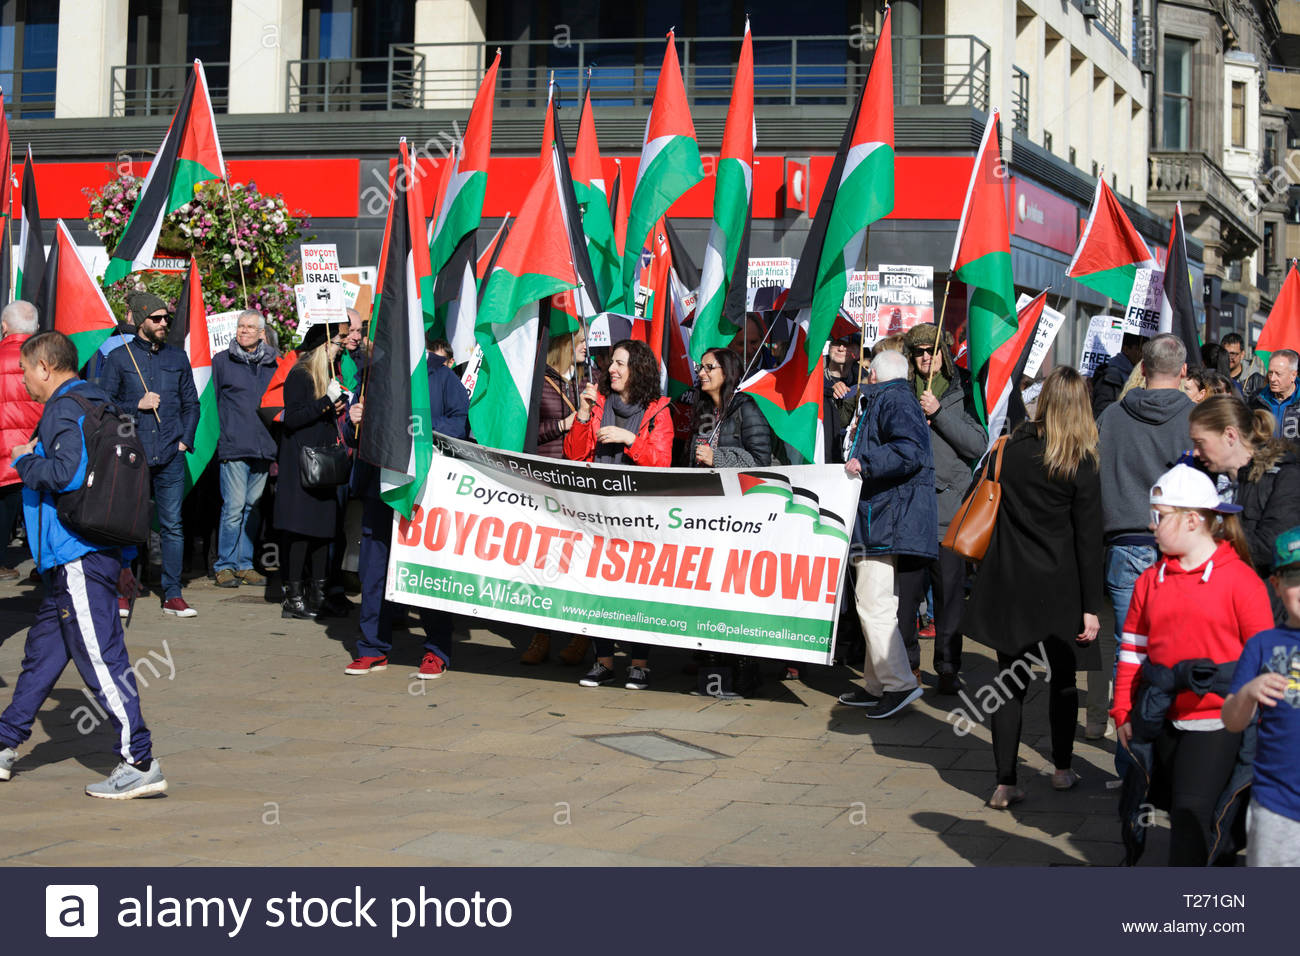 Edinburgh, Scotland, UK. 30th March 2019.  Gathering in Castle Street before marching to Bute House, Charlotte Square. Demonstration of solidarity with the Palestinian people on 30th March, Land Day, which also marks one year since the start of the Gaza Great March of Return. On Land Day in 2018, Palestinians in Gaza began their Great March of Return calling for the lifting of Israel's 11-year illegal blockade on Gaza and for the right of Palestinian refugees to return to their villages and towns. Credit: Craig Brown/Alamy Live News - Stock Image